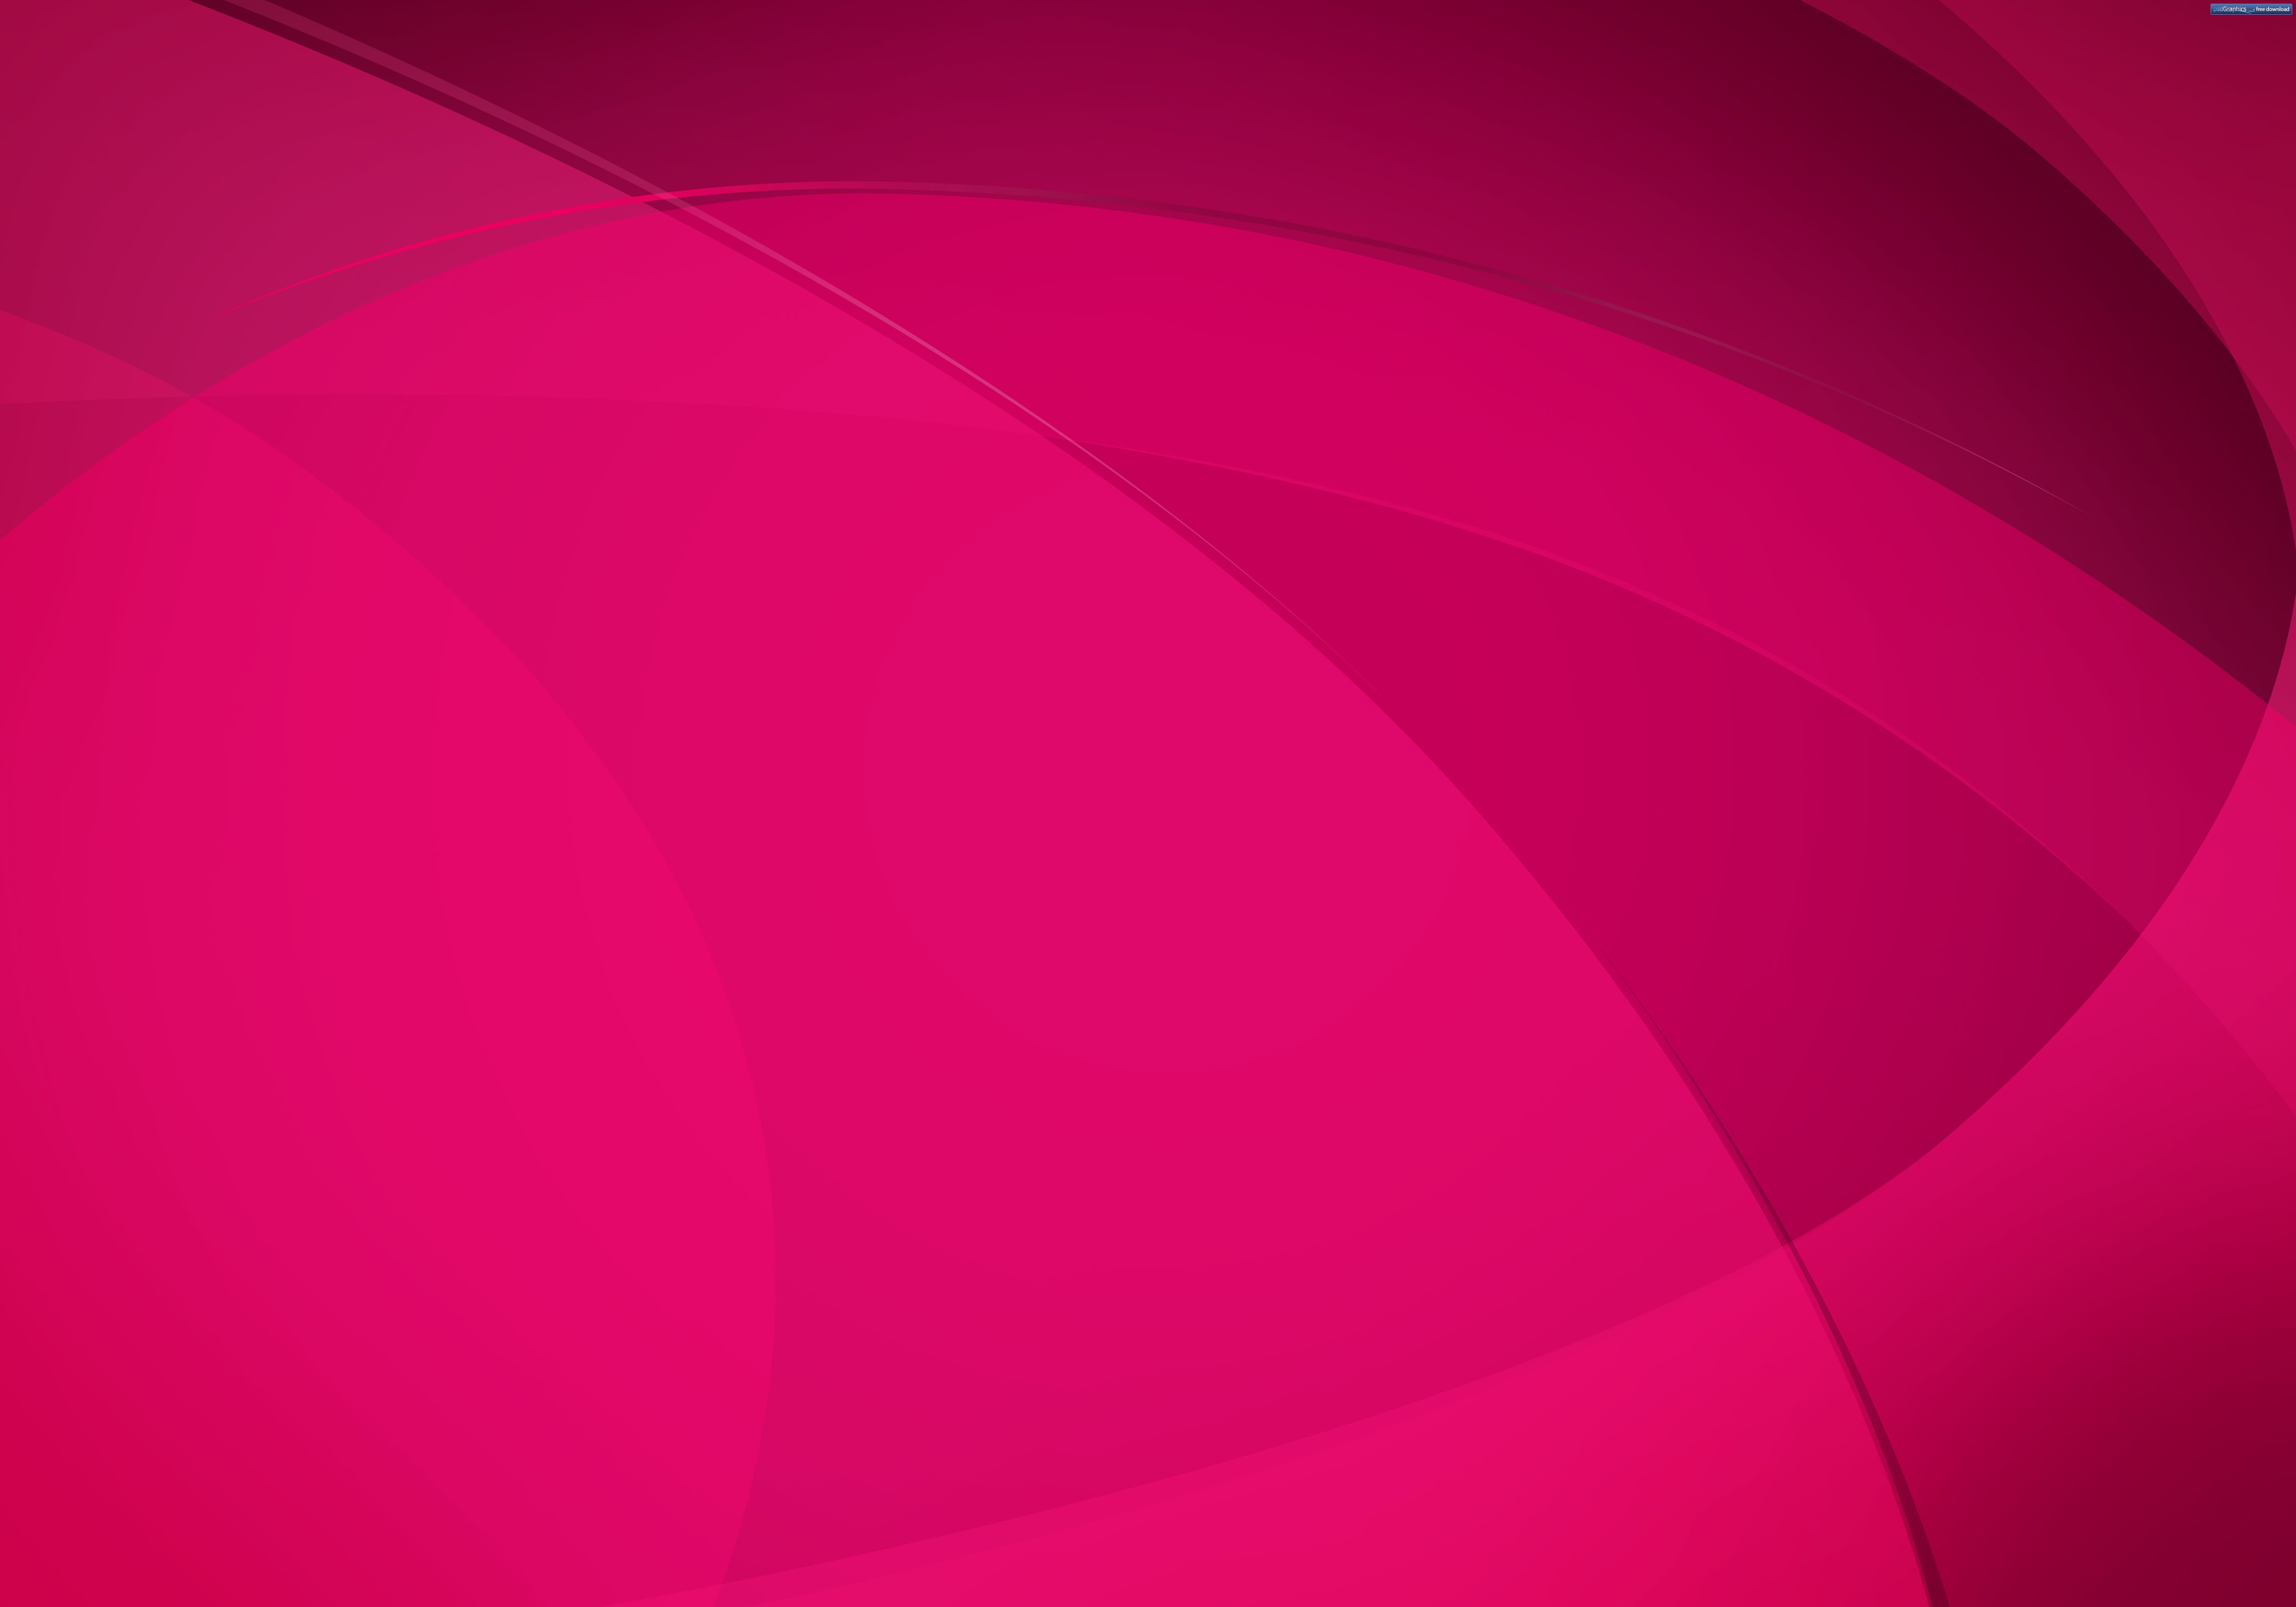 20 high res pink backgrounds freecreatives high res pink background voltagebd Choice Image